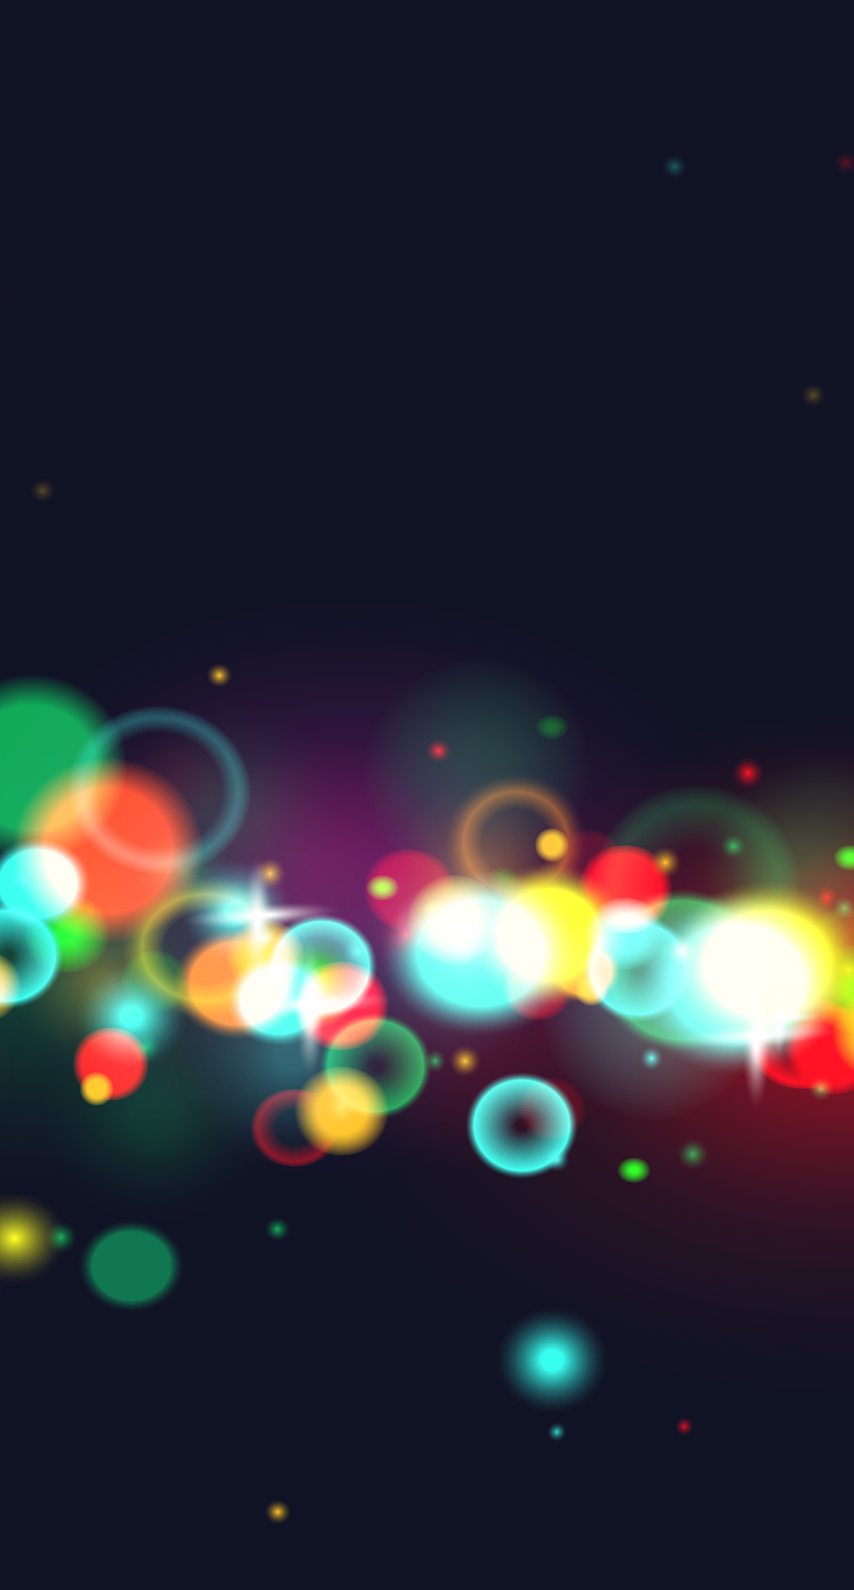 magic, abstract, bubbles, bright, glowy